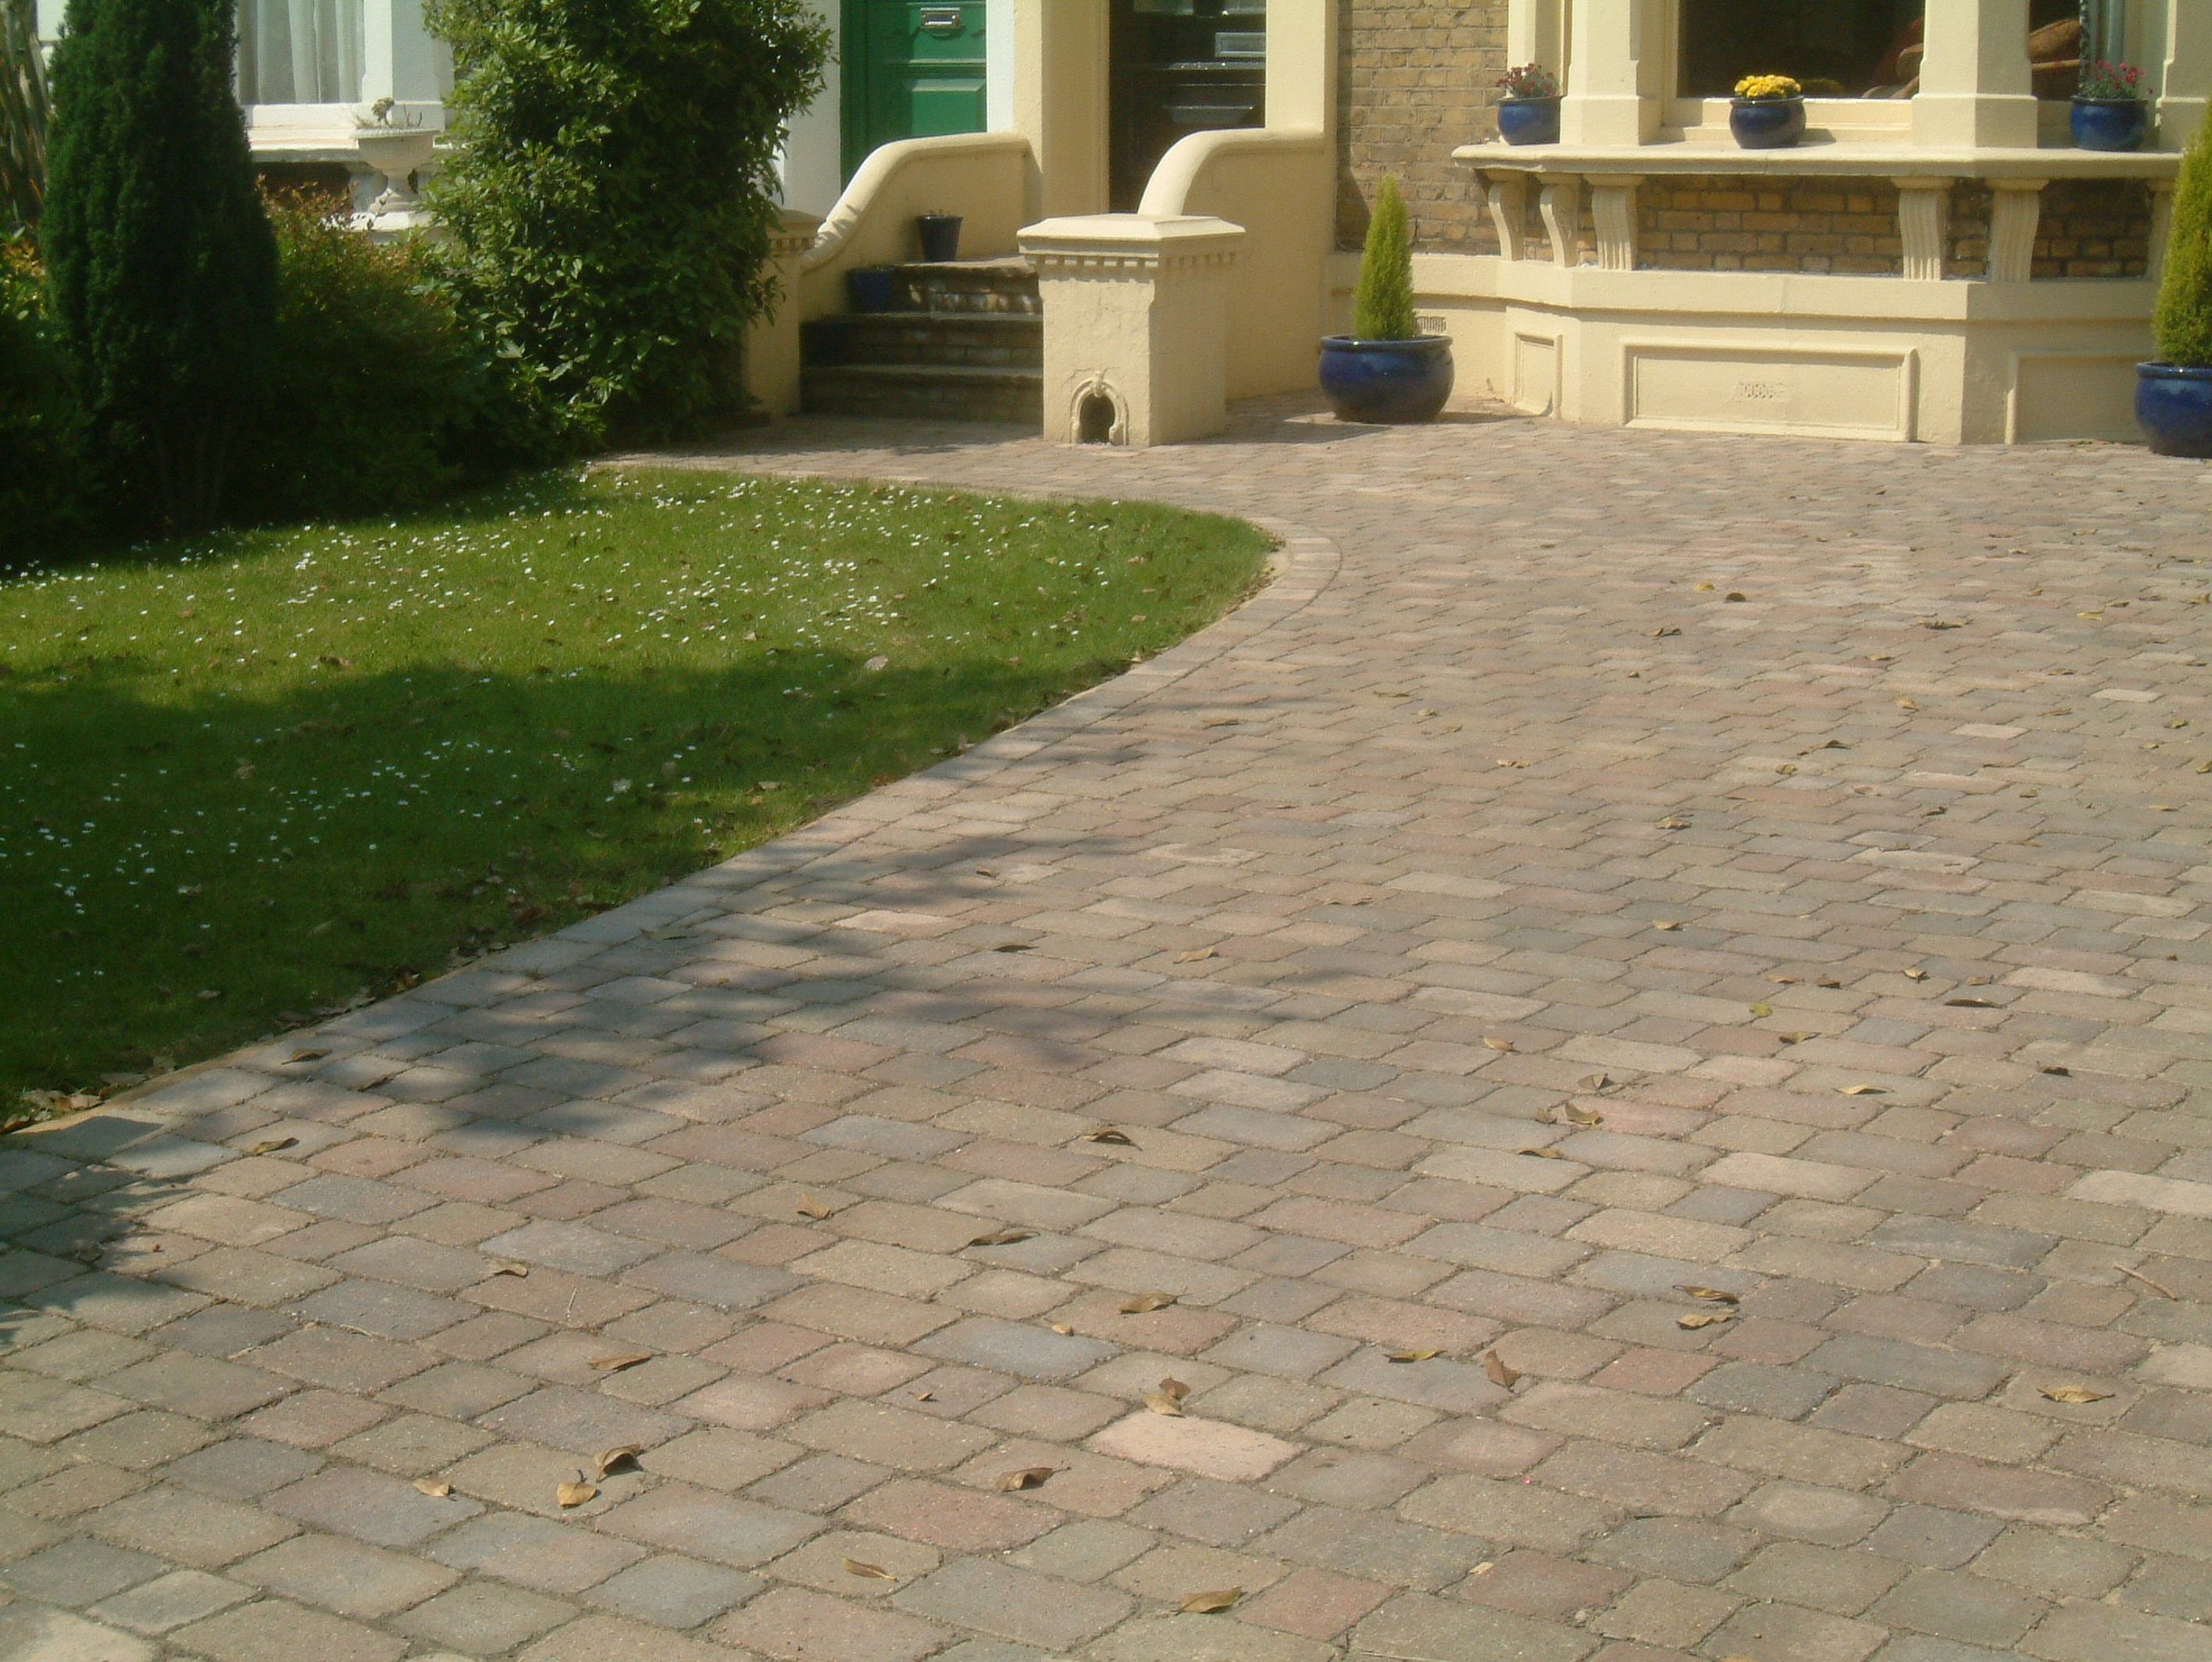 Driveway designs best 10 tarmac driveways ideas on pinterest ways to upgrade your home driveway Home driveway design ideas